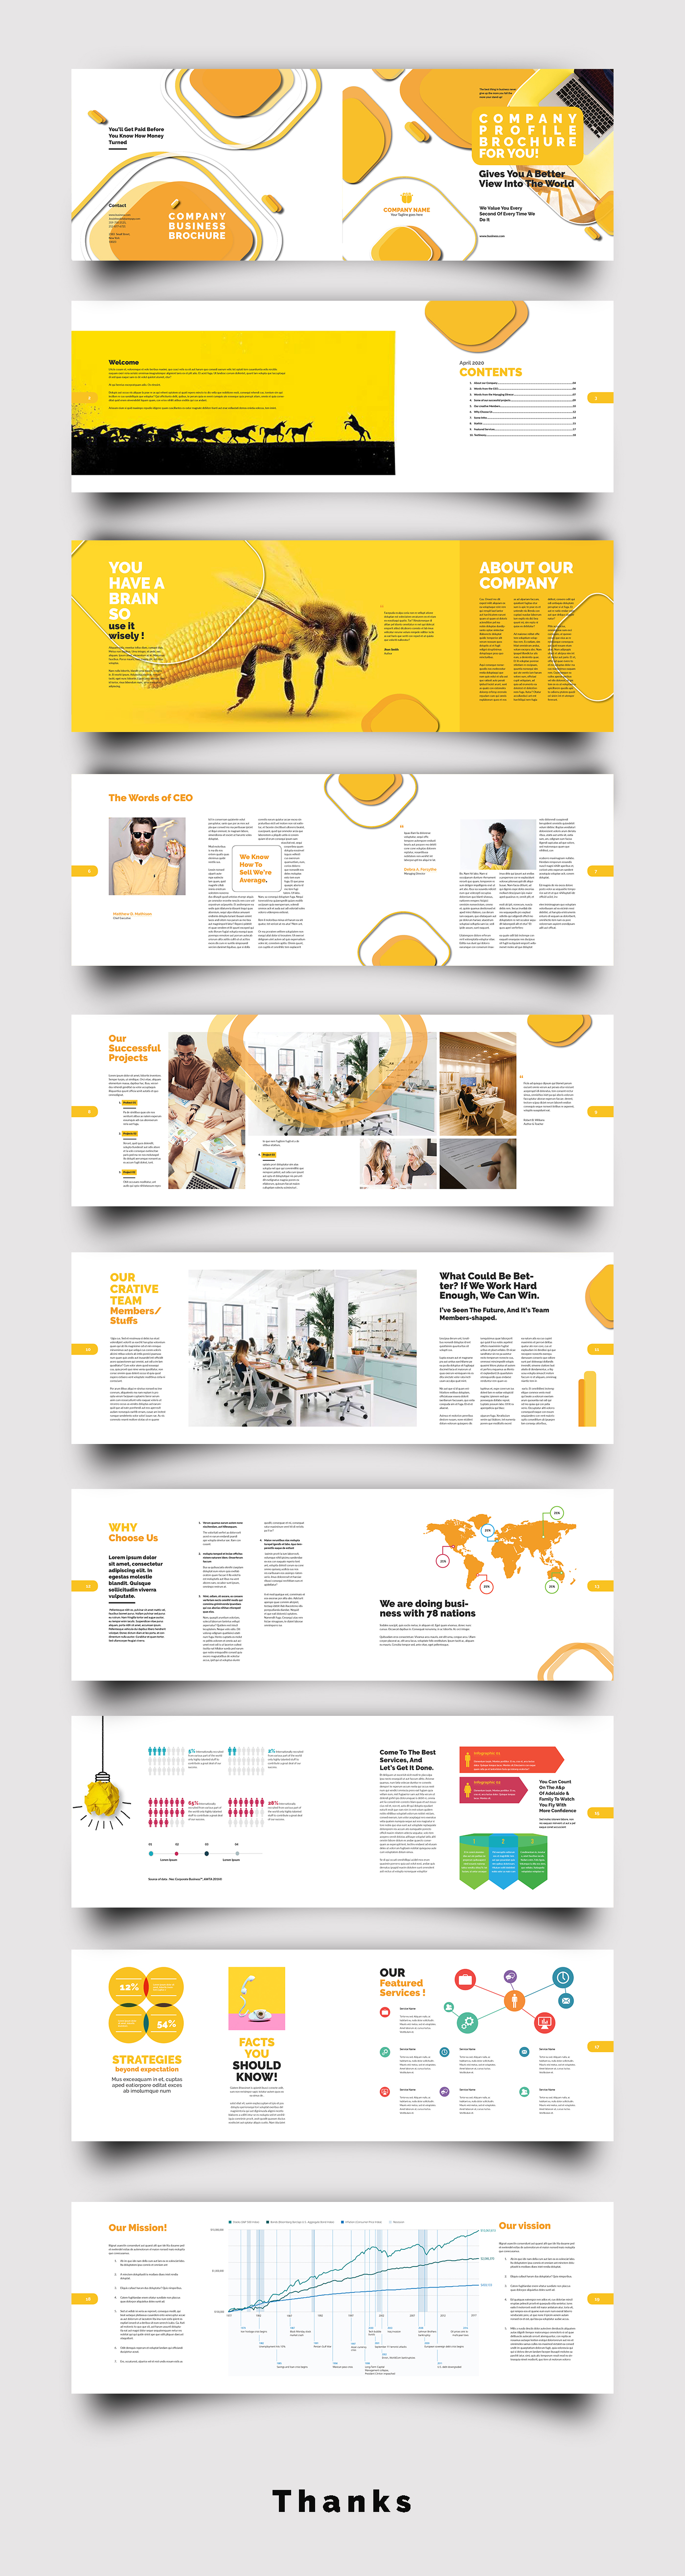 Creative Yellow and White Brochure Design Template